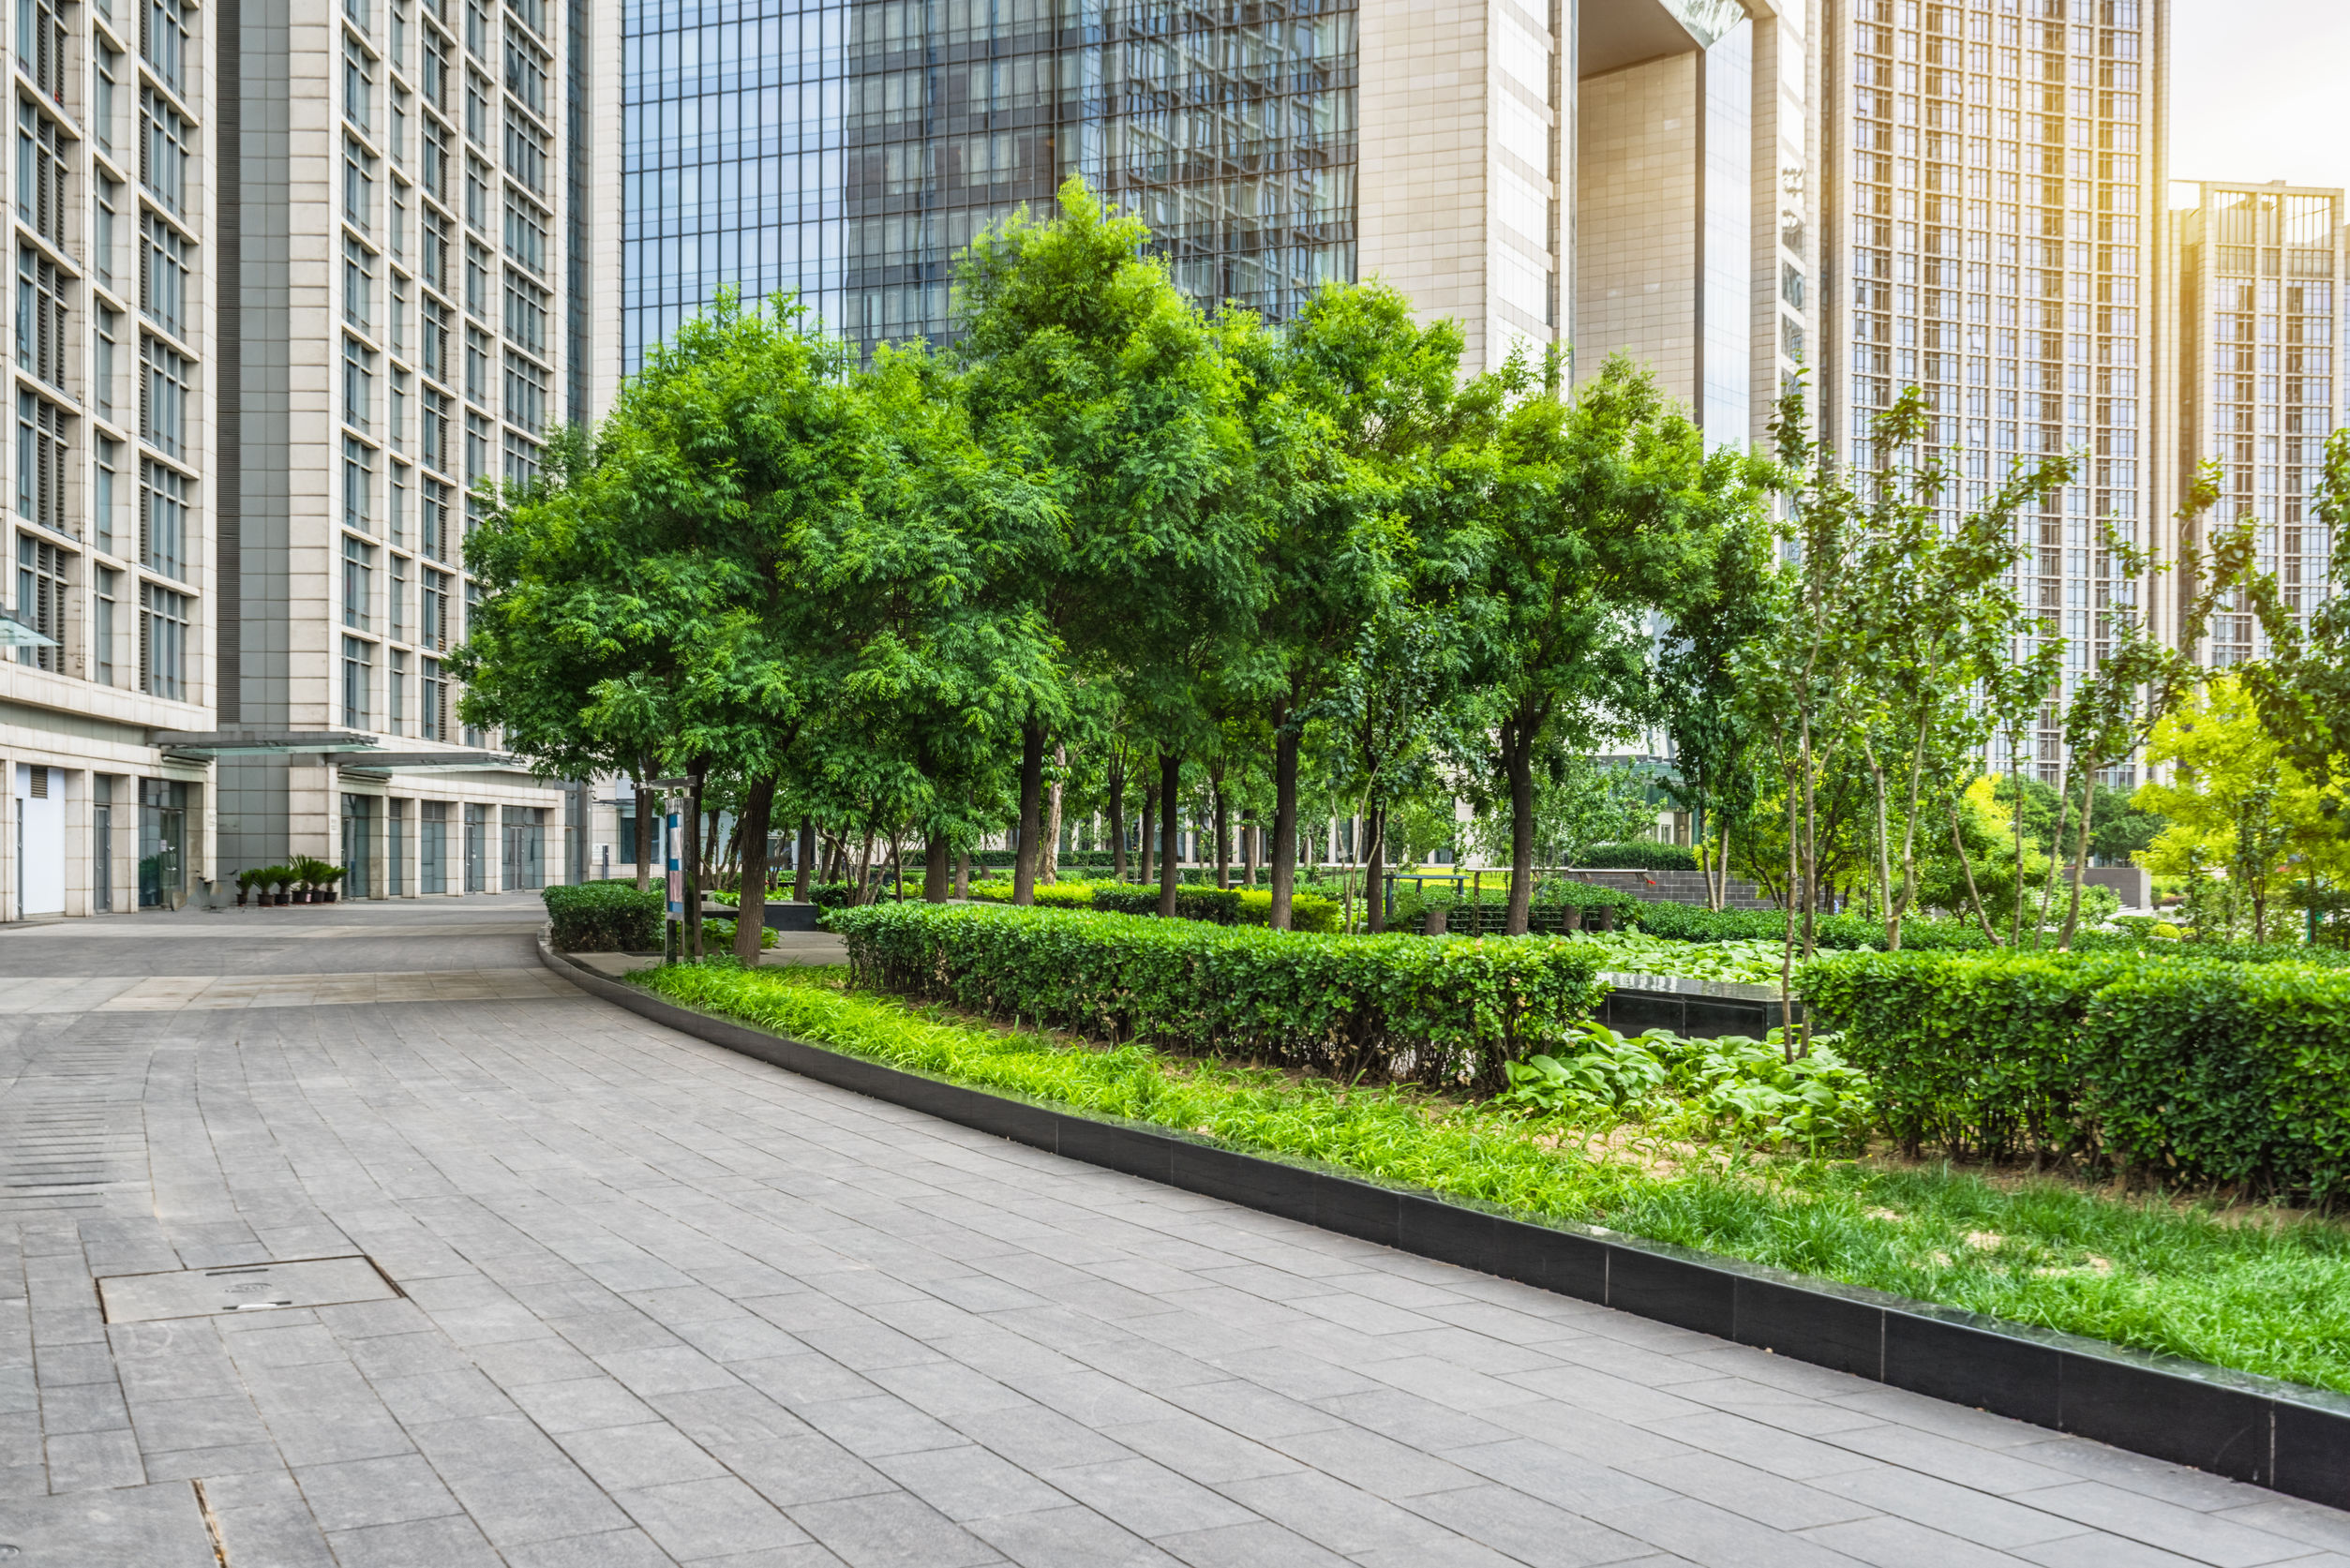 Reimagine Your Property: Checklist for Designing Commercial Landscapes